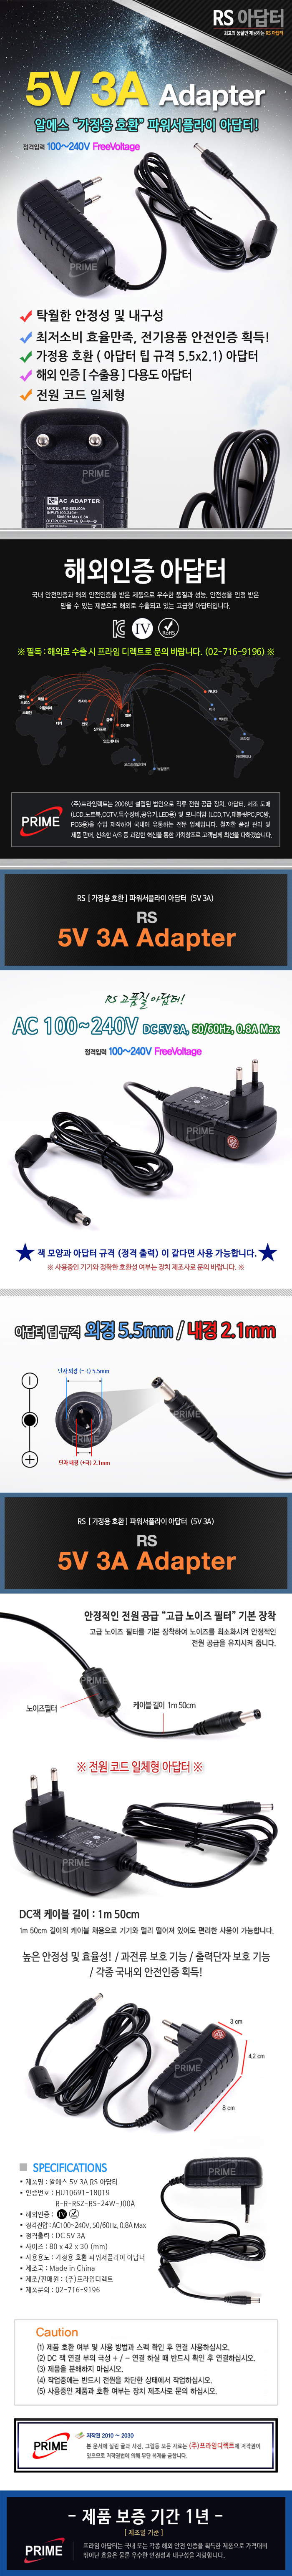 RS어댑터  5V 3A 어댑터(외경5.5mm 내경 2.1mm)